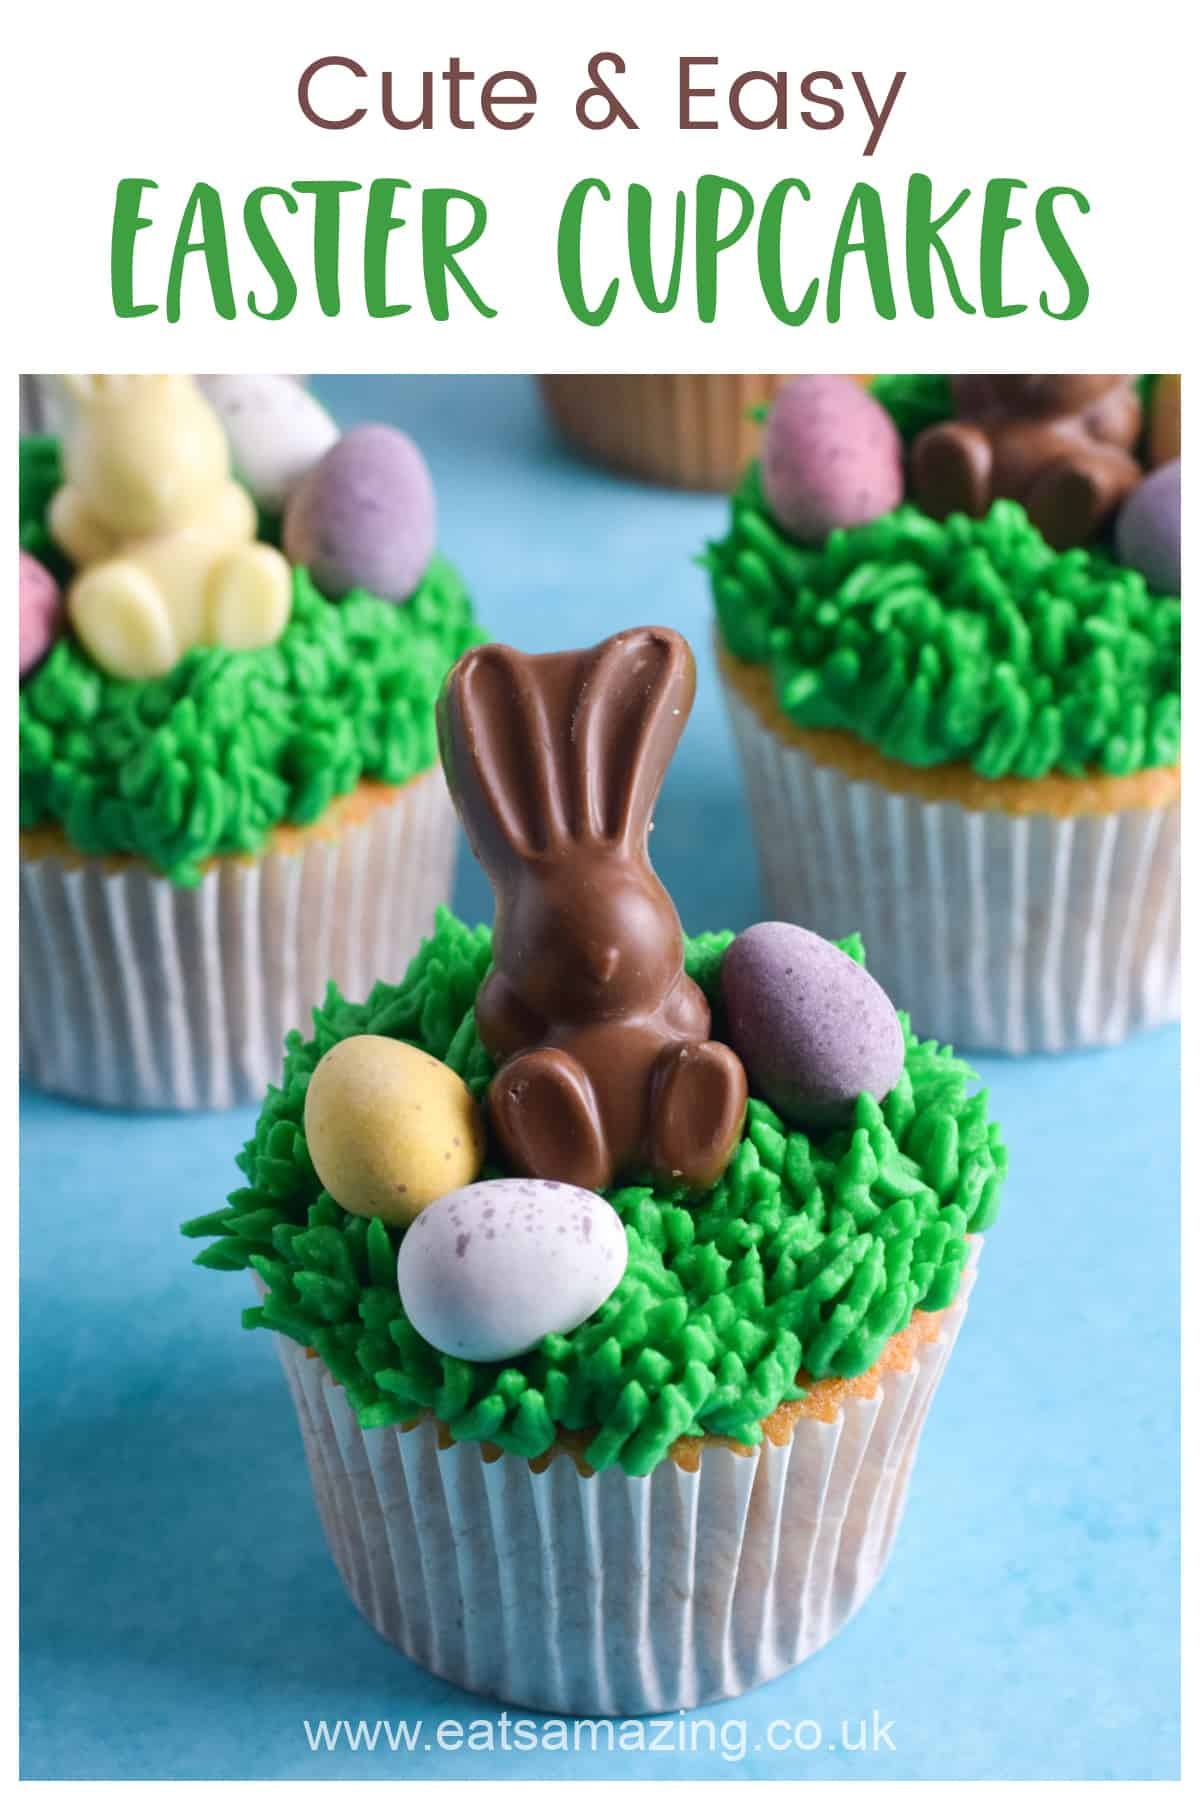 Cute and easy Easter Bunny Cupcakes recipe - fun Easter baking for kids